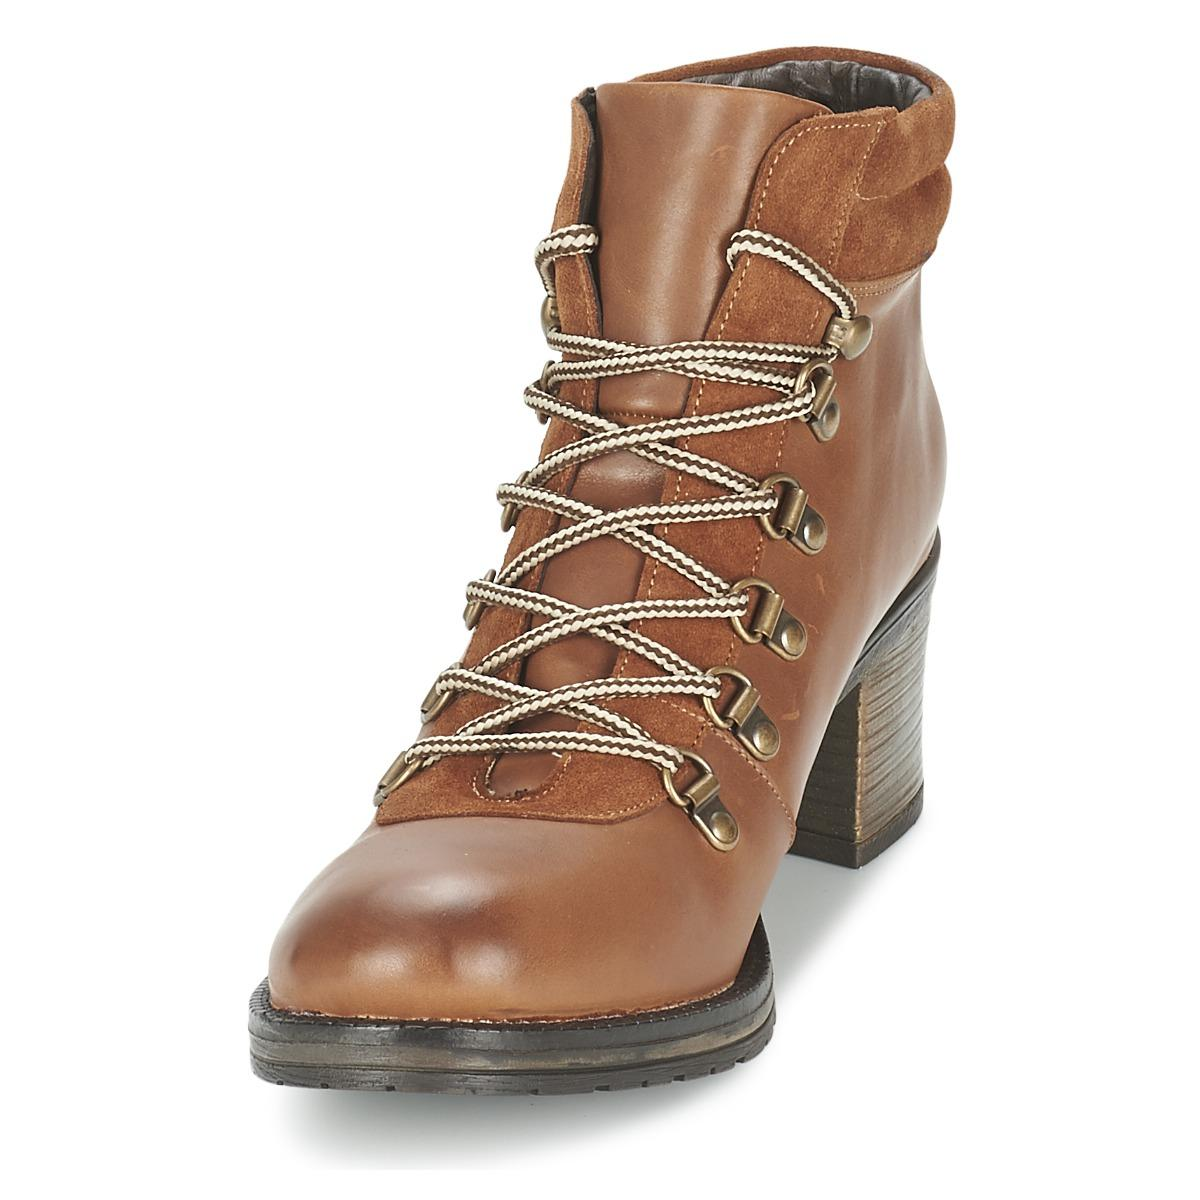 Betty London Leather Natur Women's Low Ankle Boots In Brown - Save 40%